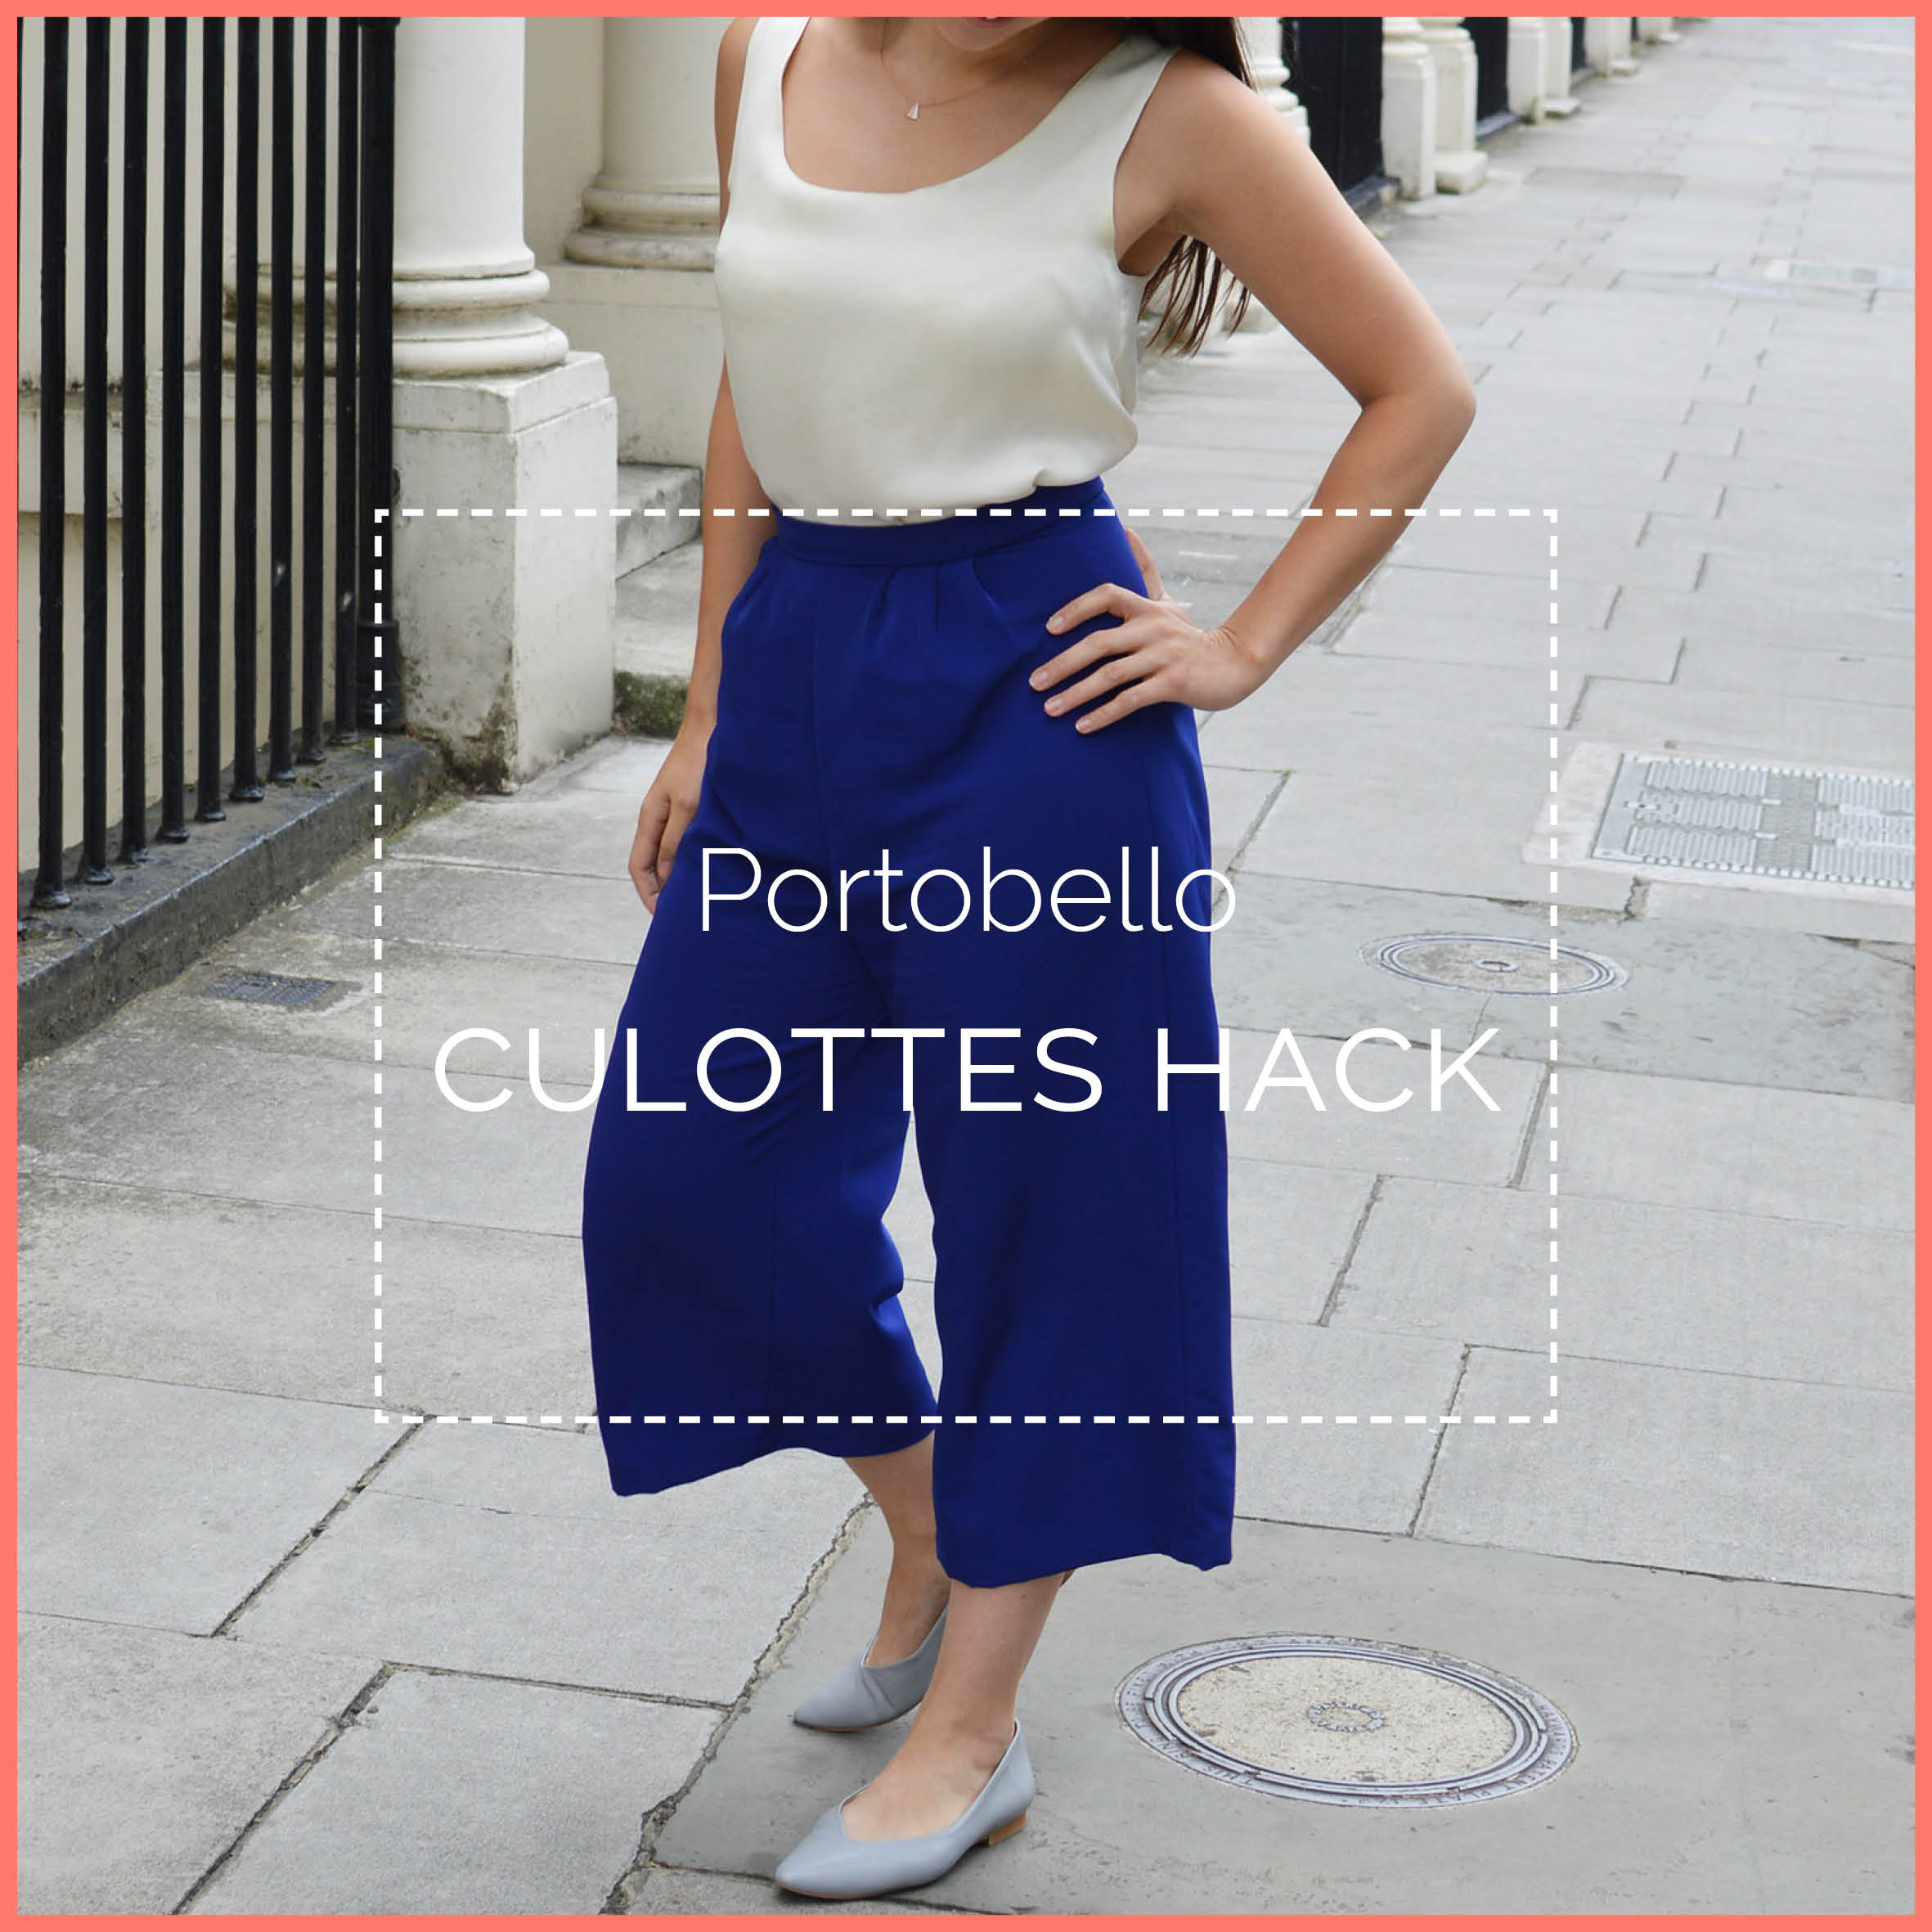 Portobello culottes hack blog header